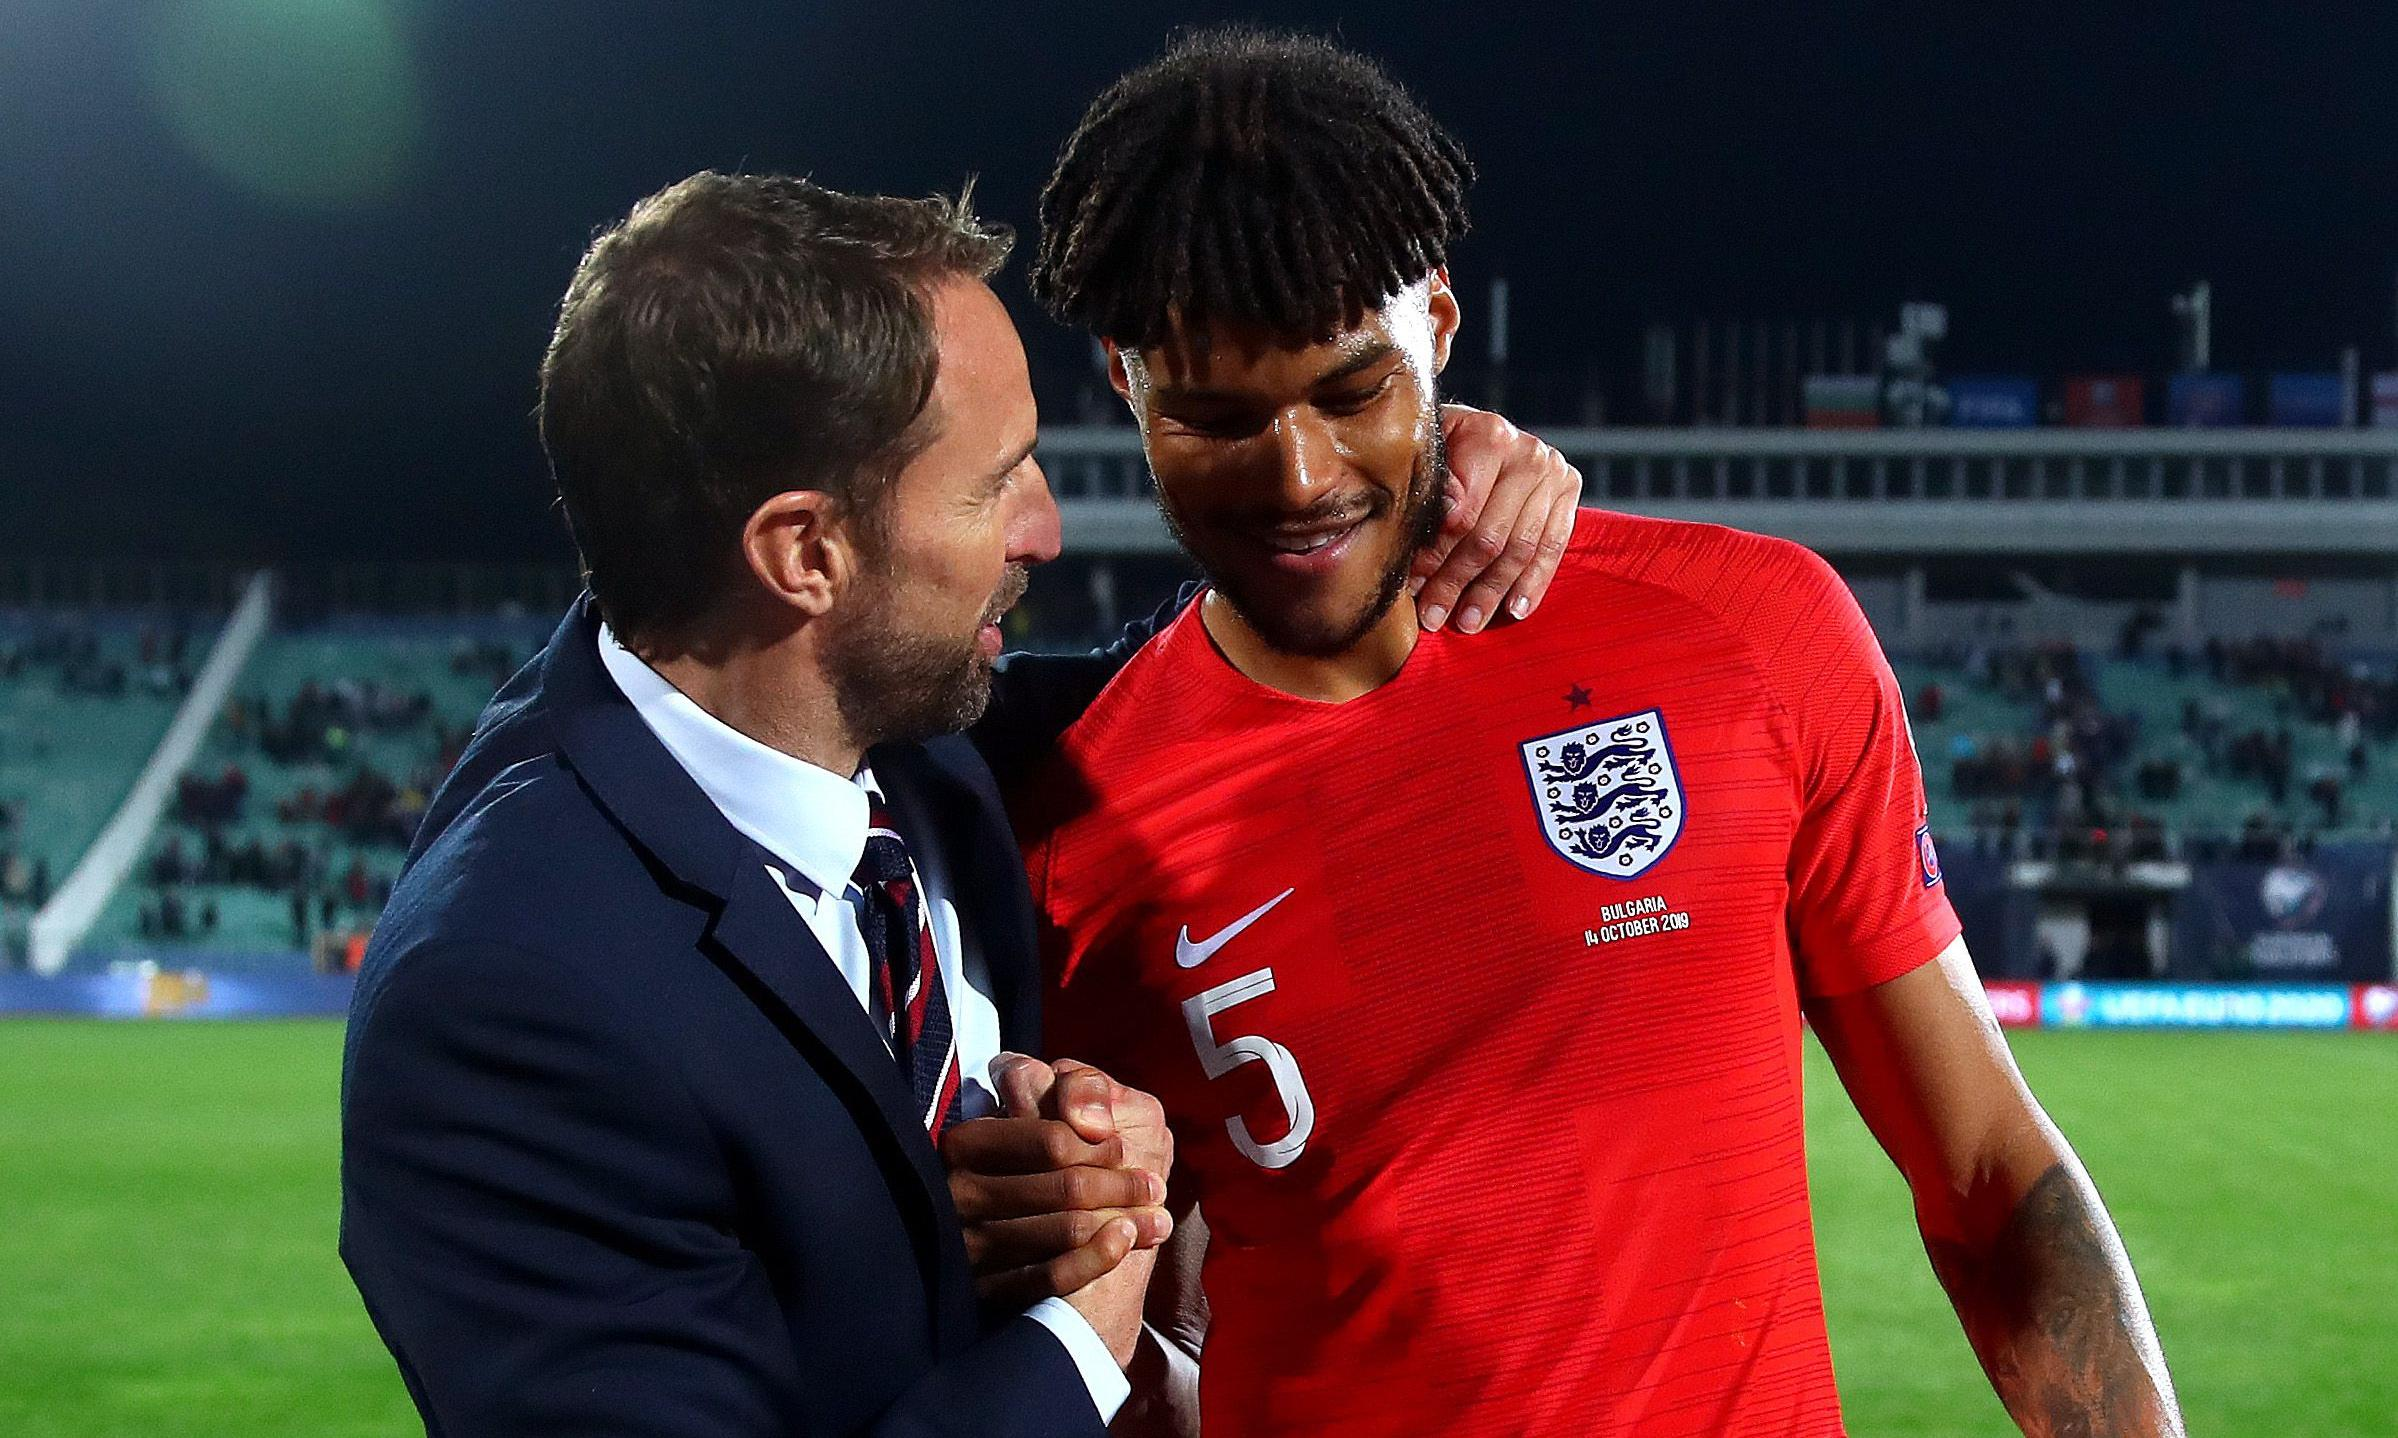 At least England's footballers lead by example in the face of racism